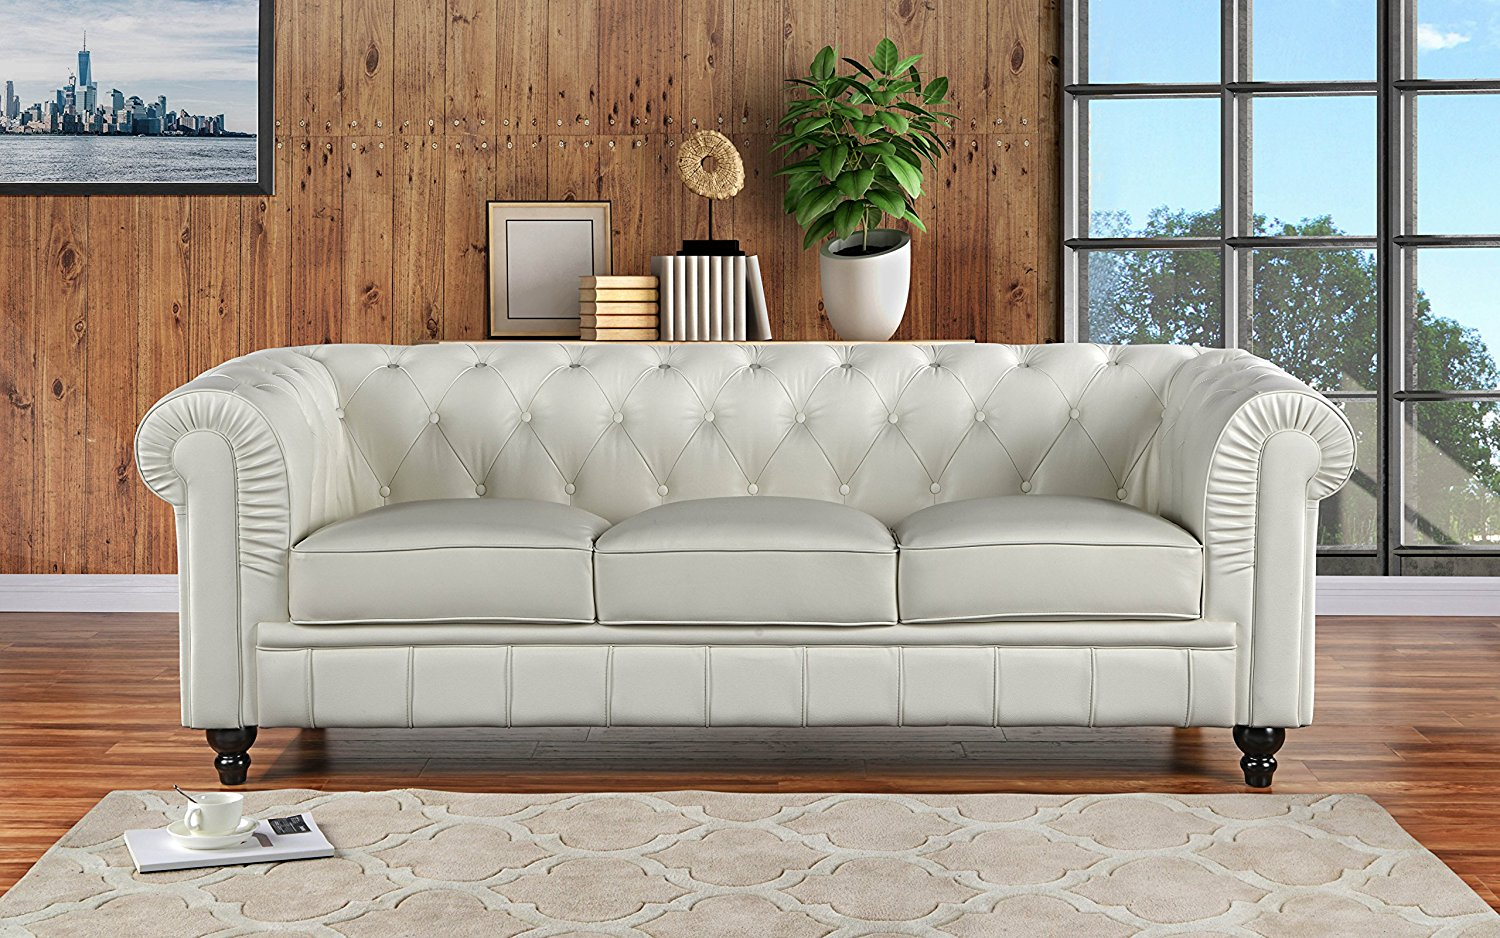 Get Quotations Clic Scroll Arm Real Leather Chesterfield Sofa Off White